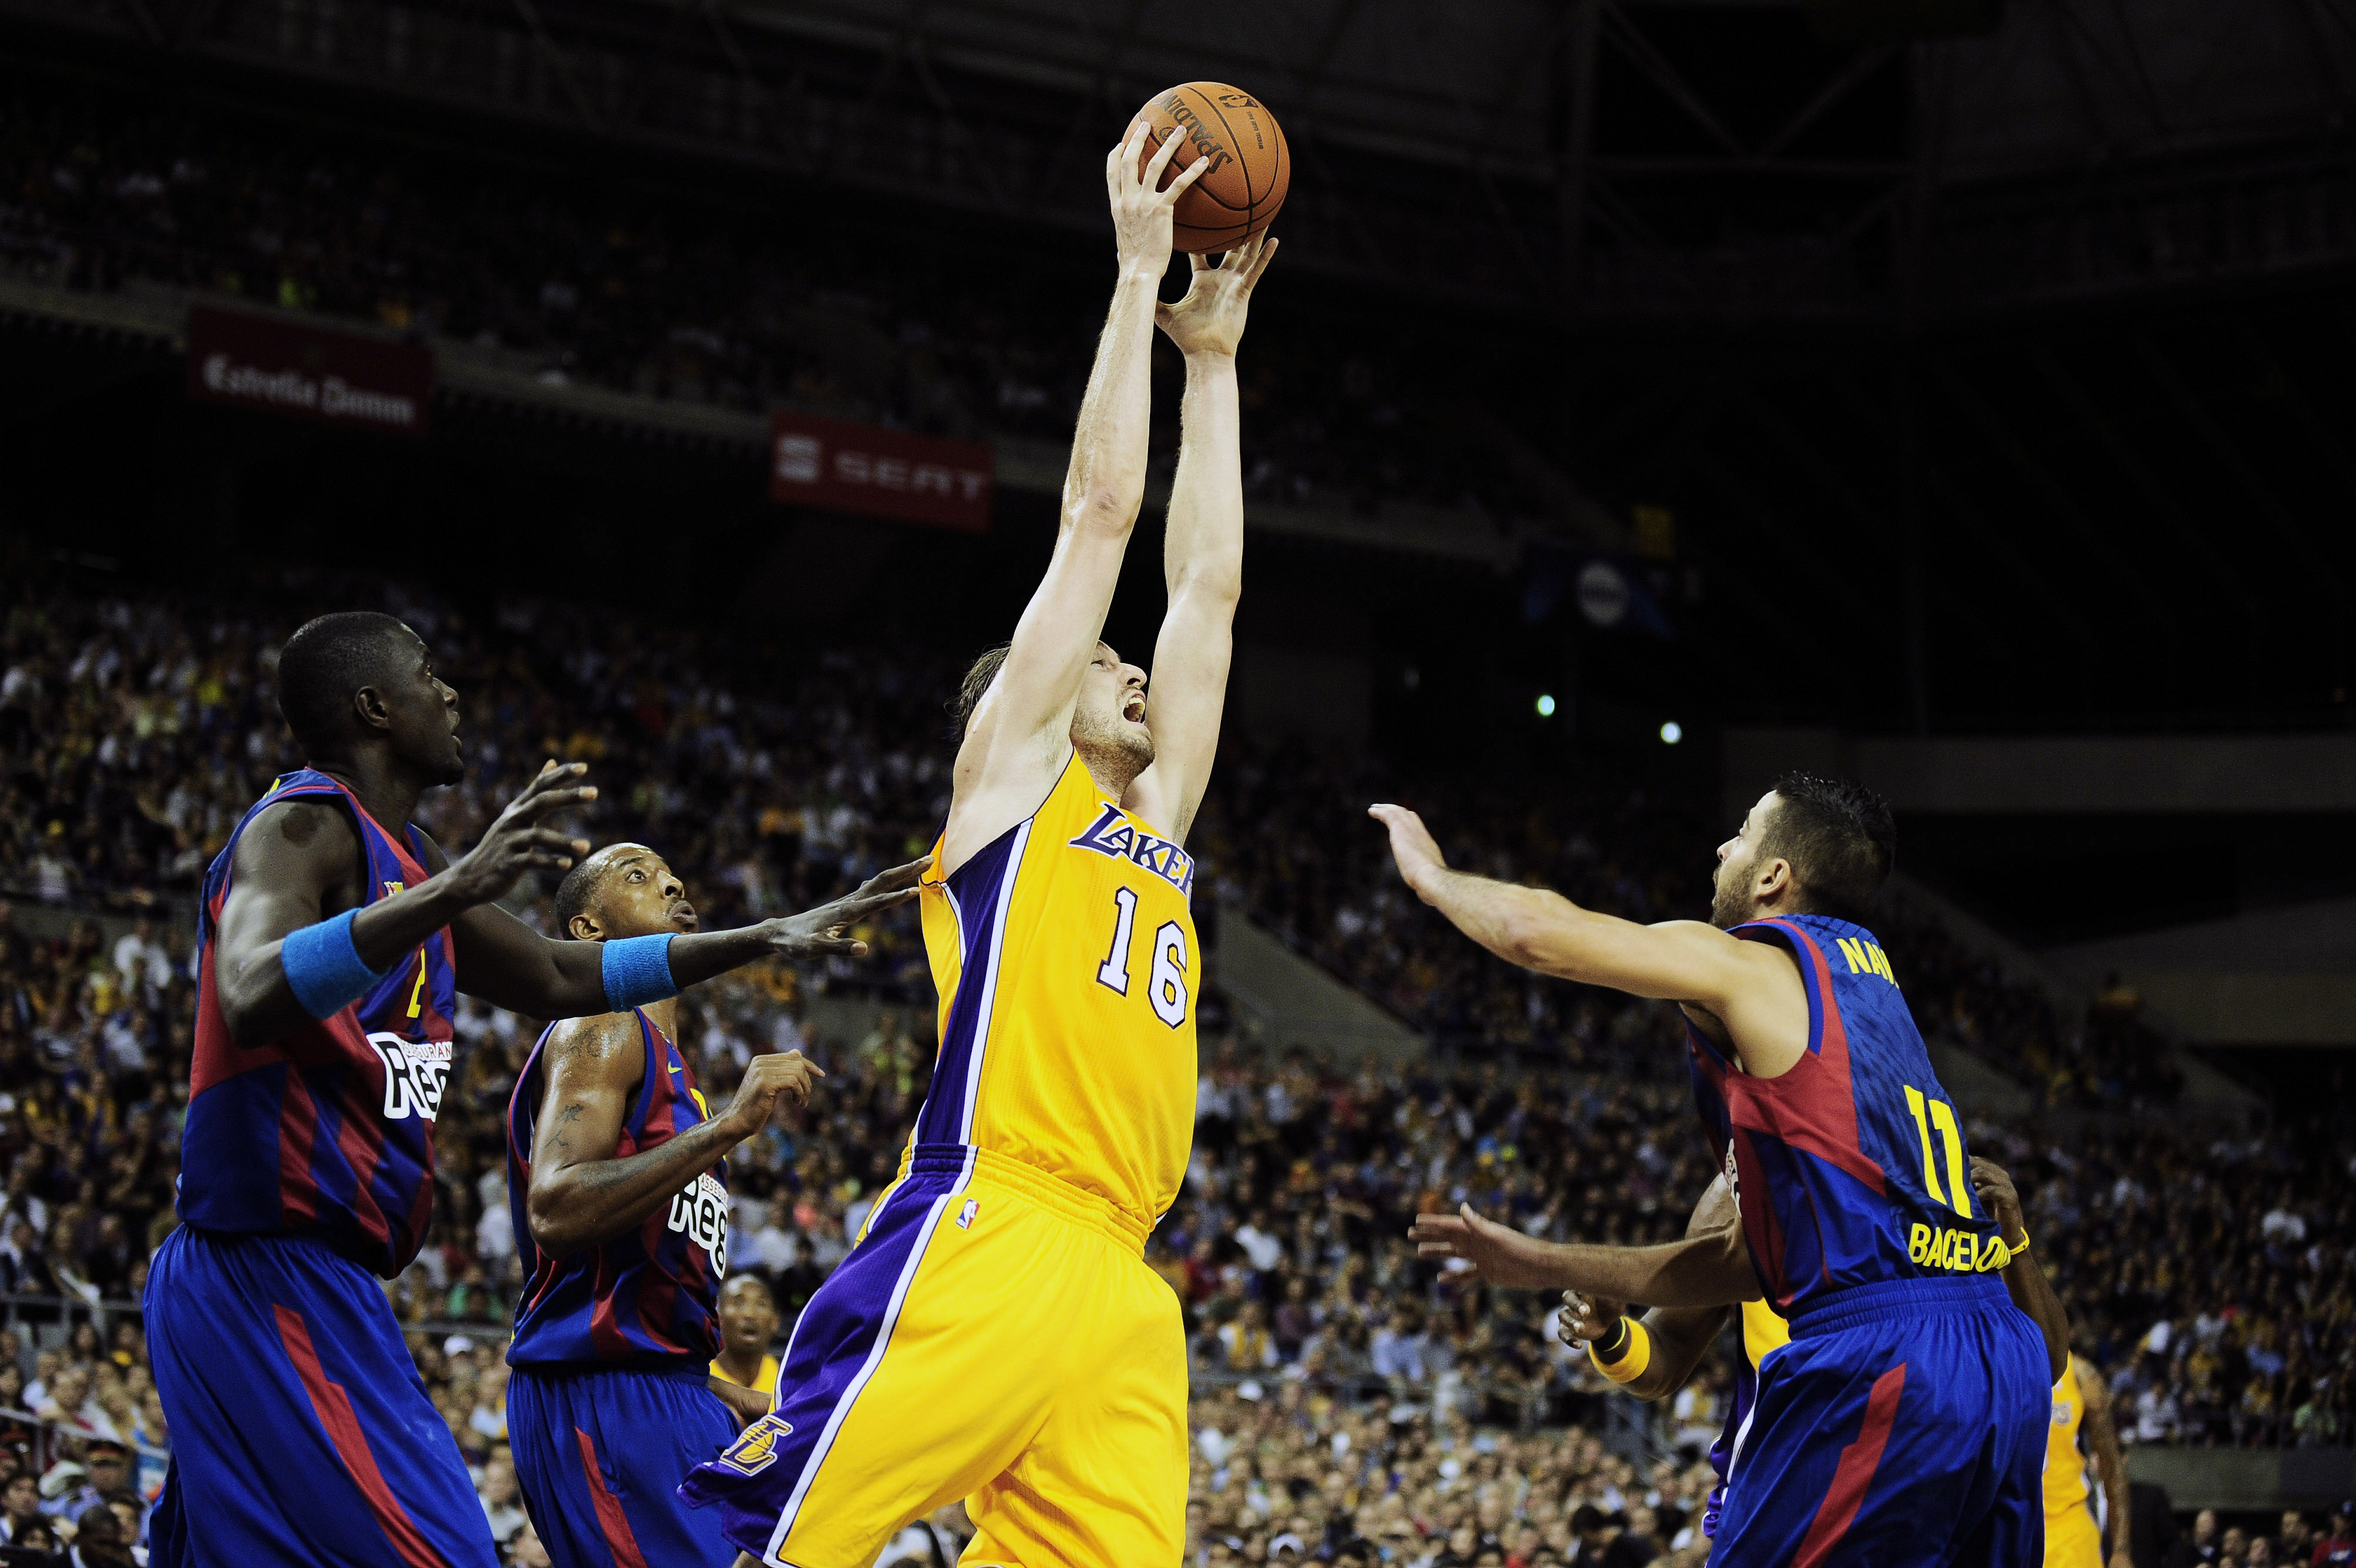 BARCELONA, SPAIN - OCTOBER 07:  Pau Gasol #16 of the Los Angeles Lakers (3rdL) fights for a rebound against Boniface Ndong #21 of the Regal FC Barcelona (L), Terence Morris #23 of the Regal FC Barcelona (2ndL) and Juan Carlos Navarro #11 of the Regal FC B